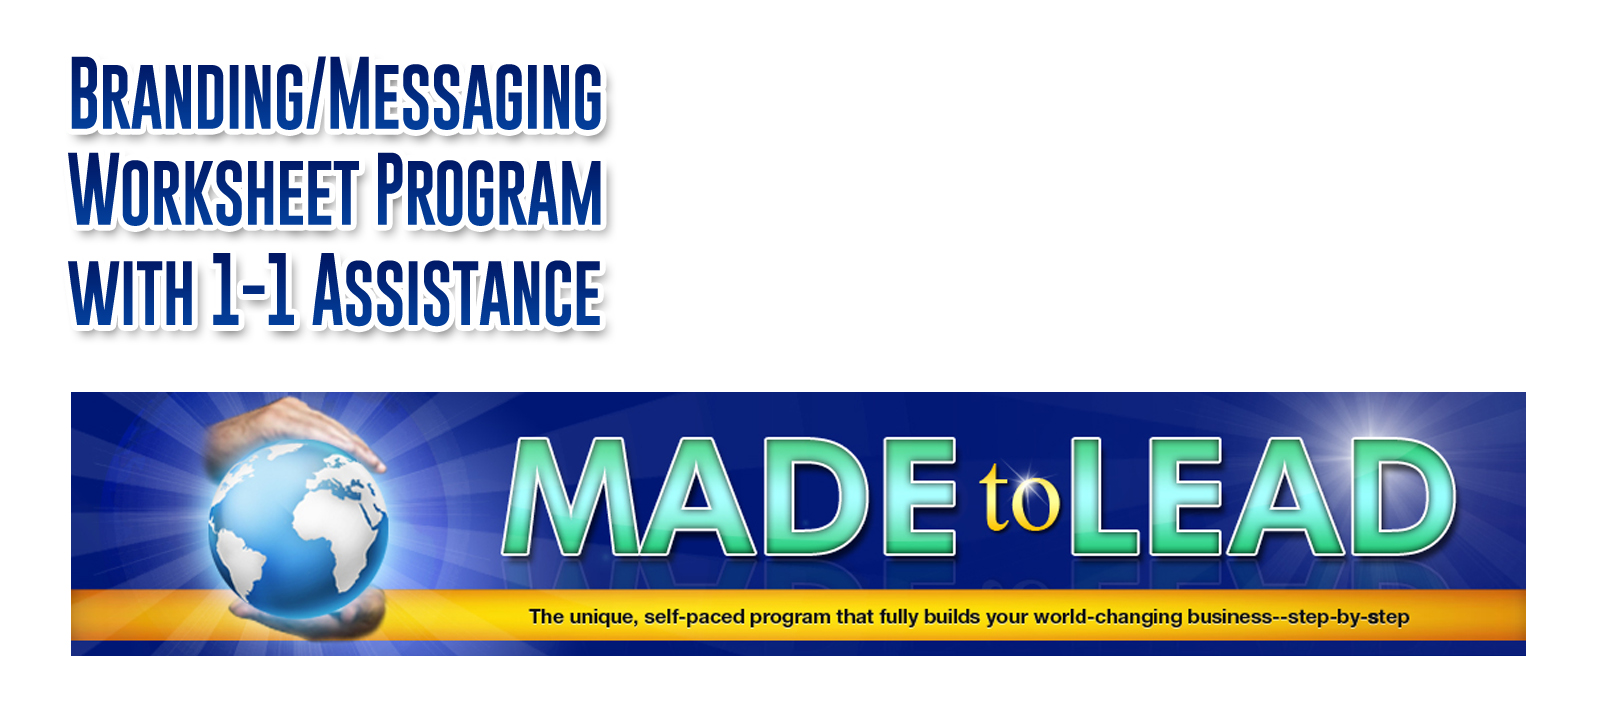 Made-to-Lead Worksheet Program